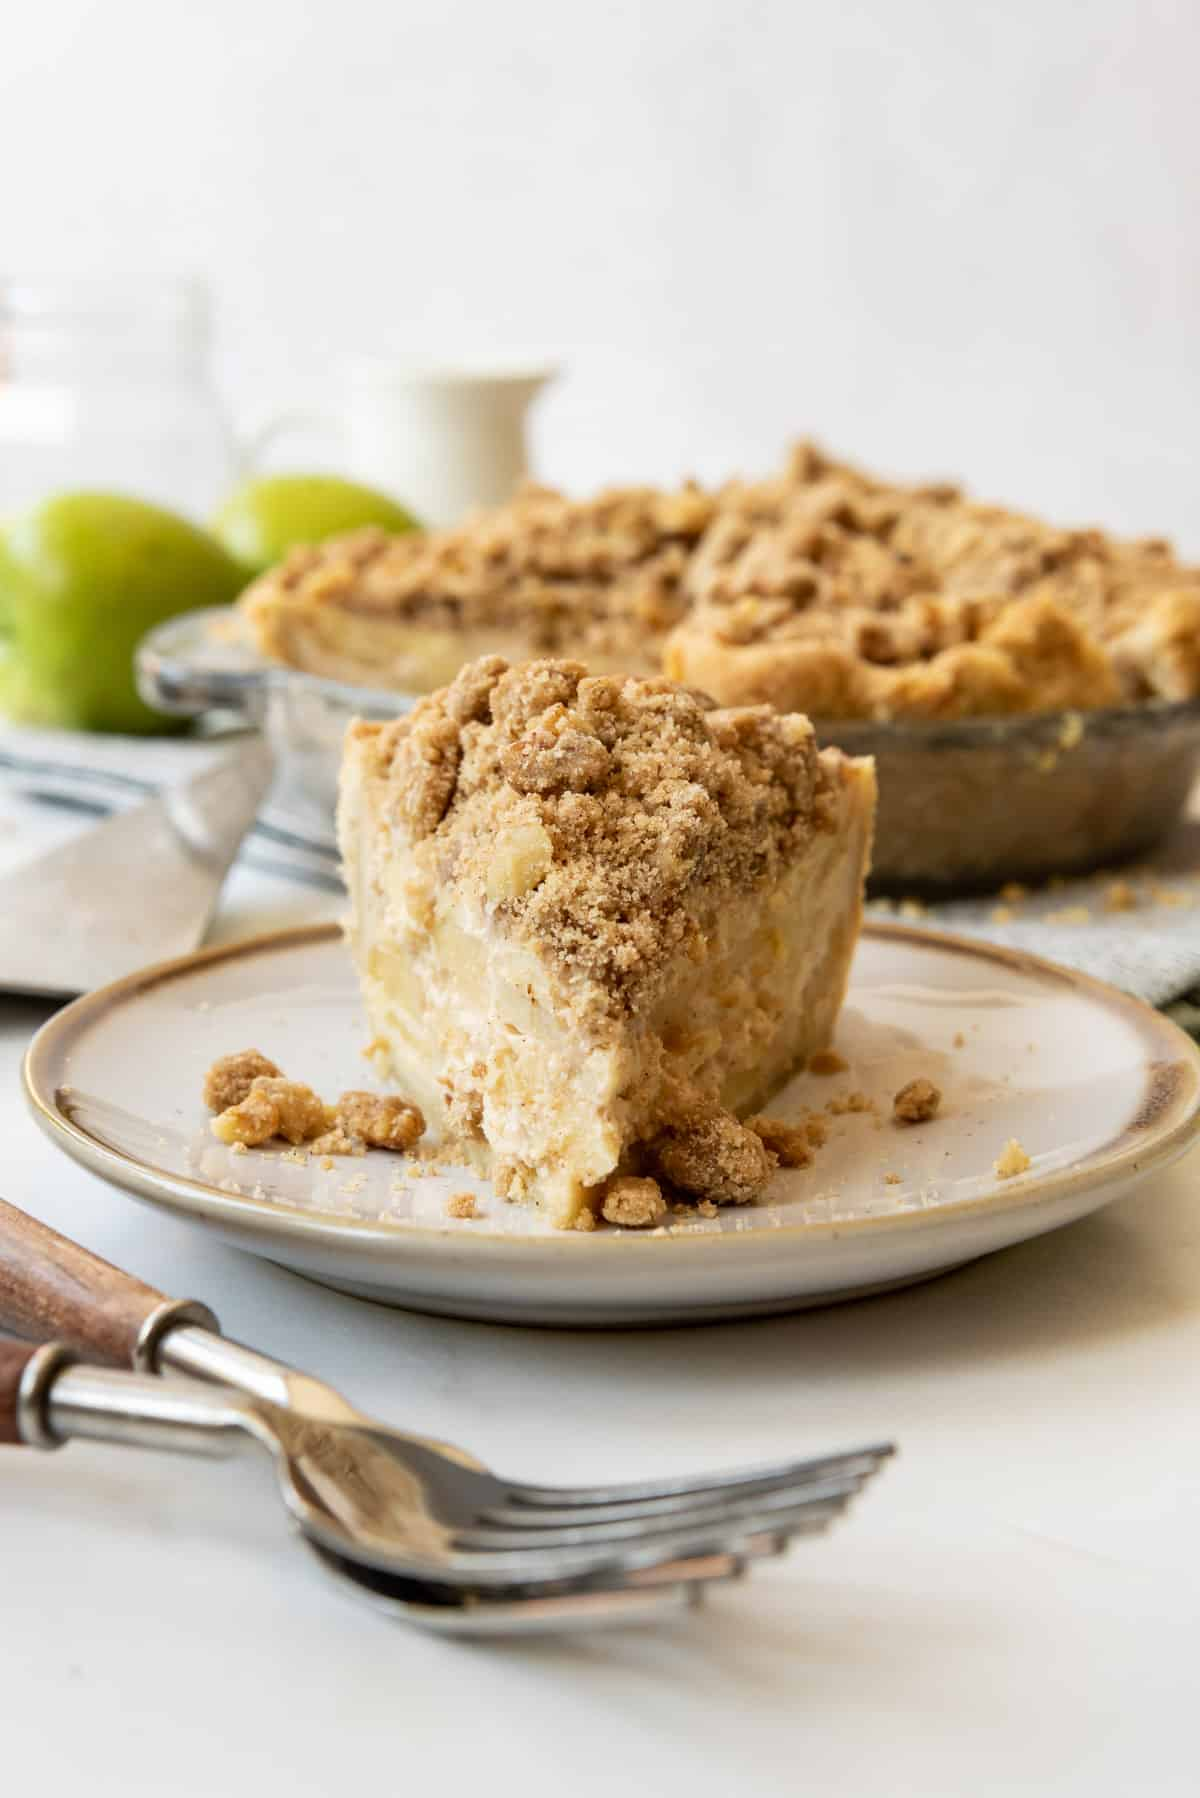 A slice of sour cream apple pie on a plate.